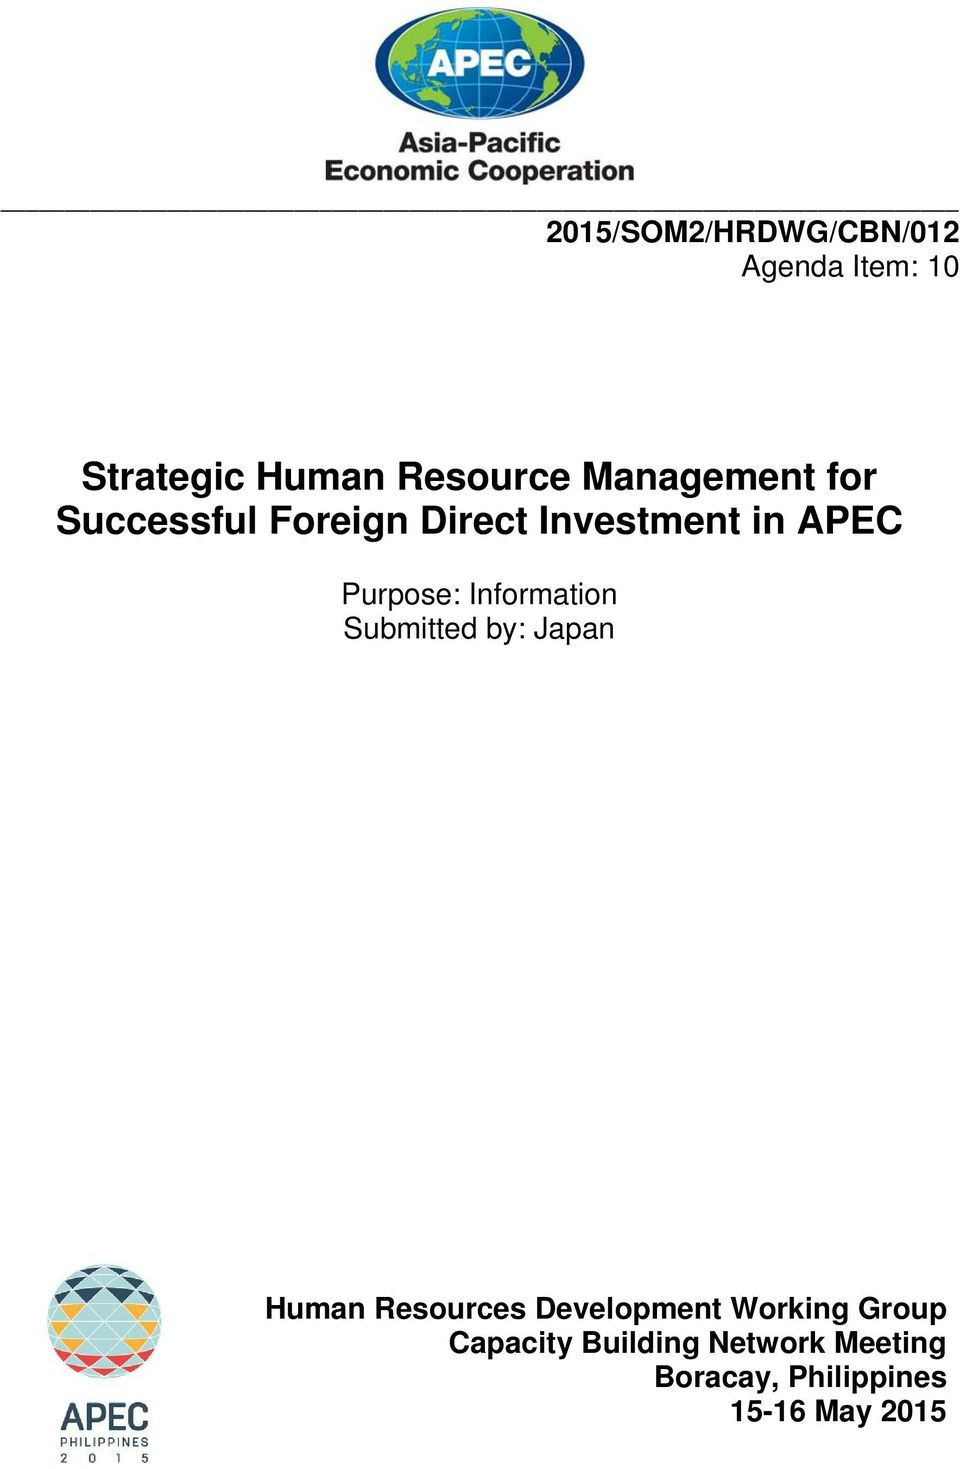 successful human resource management Human resource management deals with issues related to compensation, performance management, organisation development, safety, wellness, benefits, employee motivation, training and others hrm plays a strategic role in managing people and the workplace culture and environment.